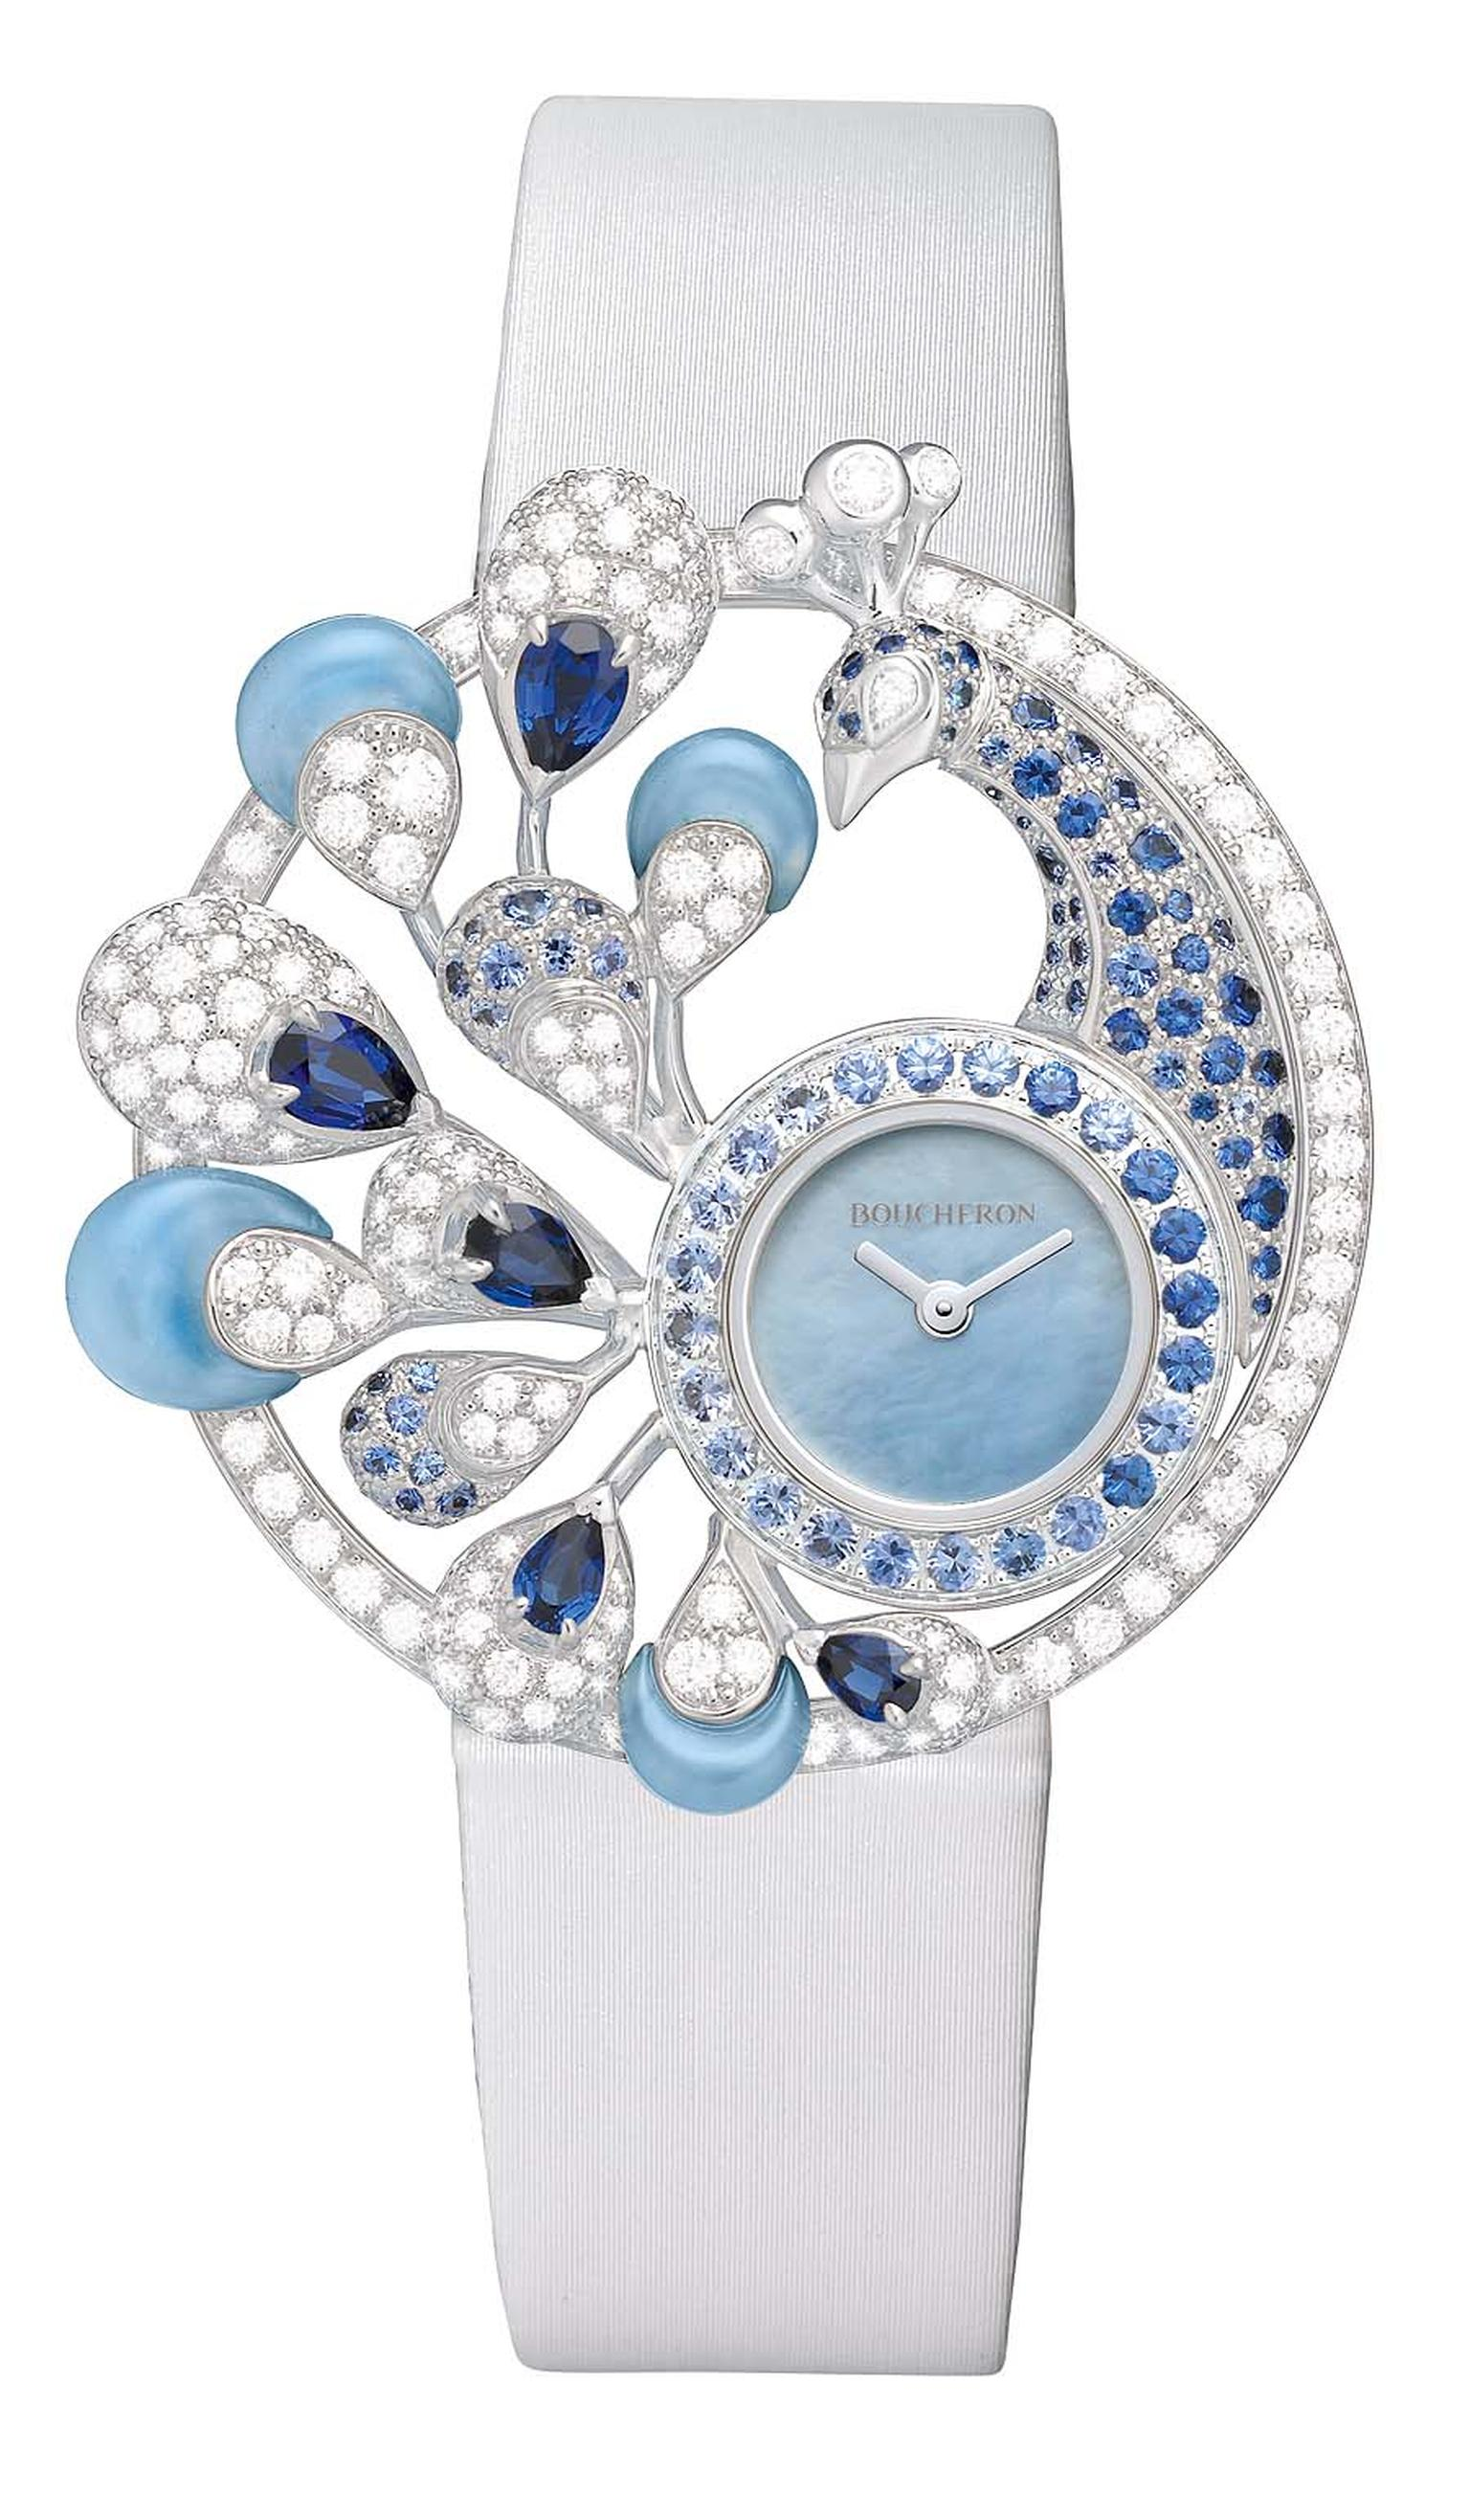 Boucheron Ajourée Héra jewellery watch, shortlisted for the Jewellery Watch award.